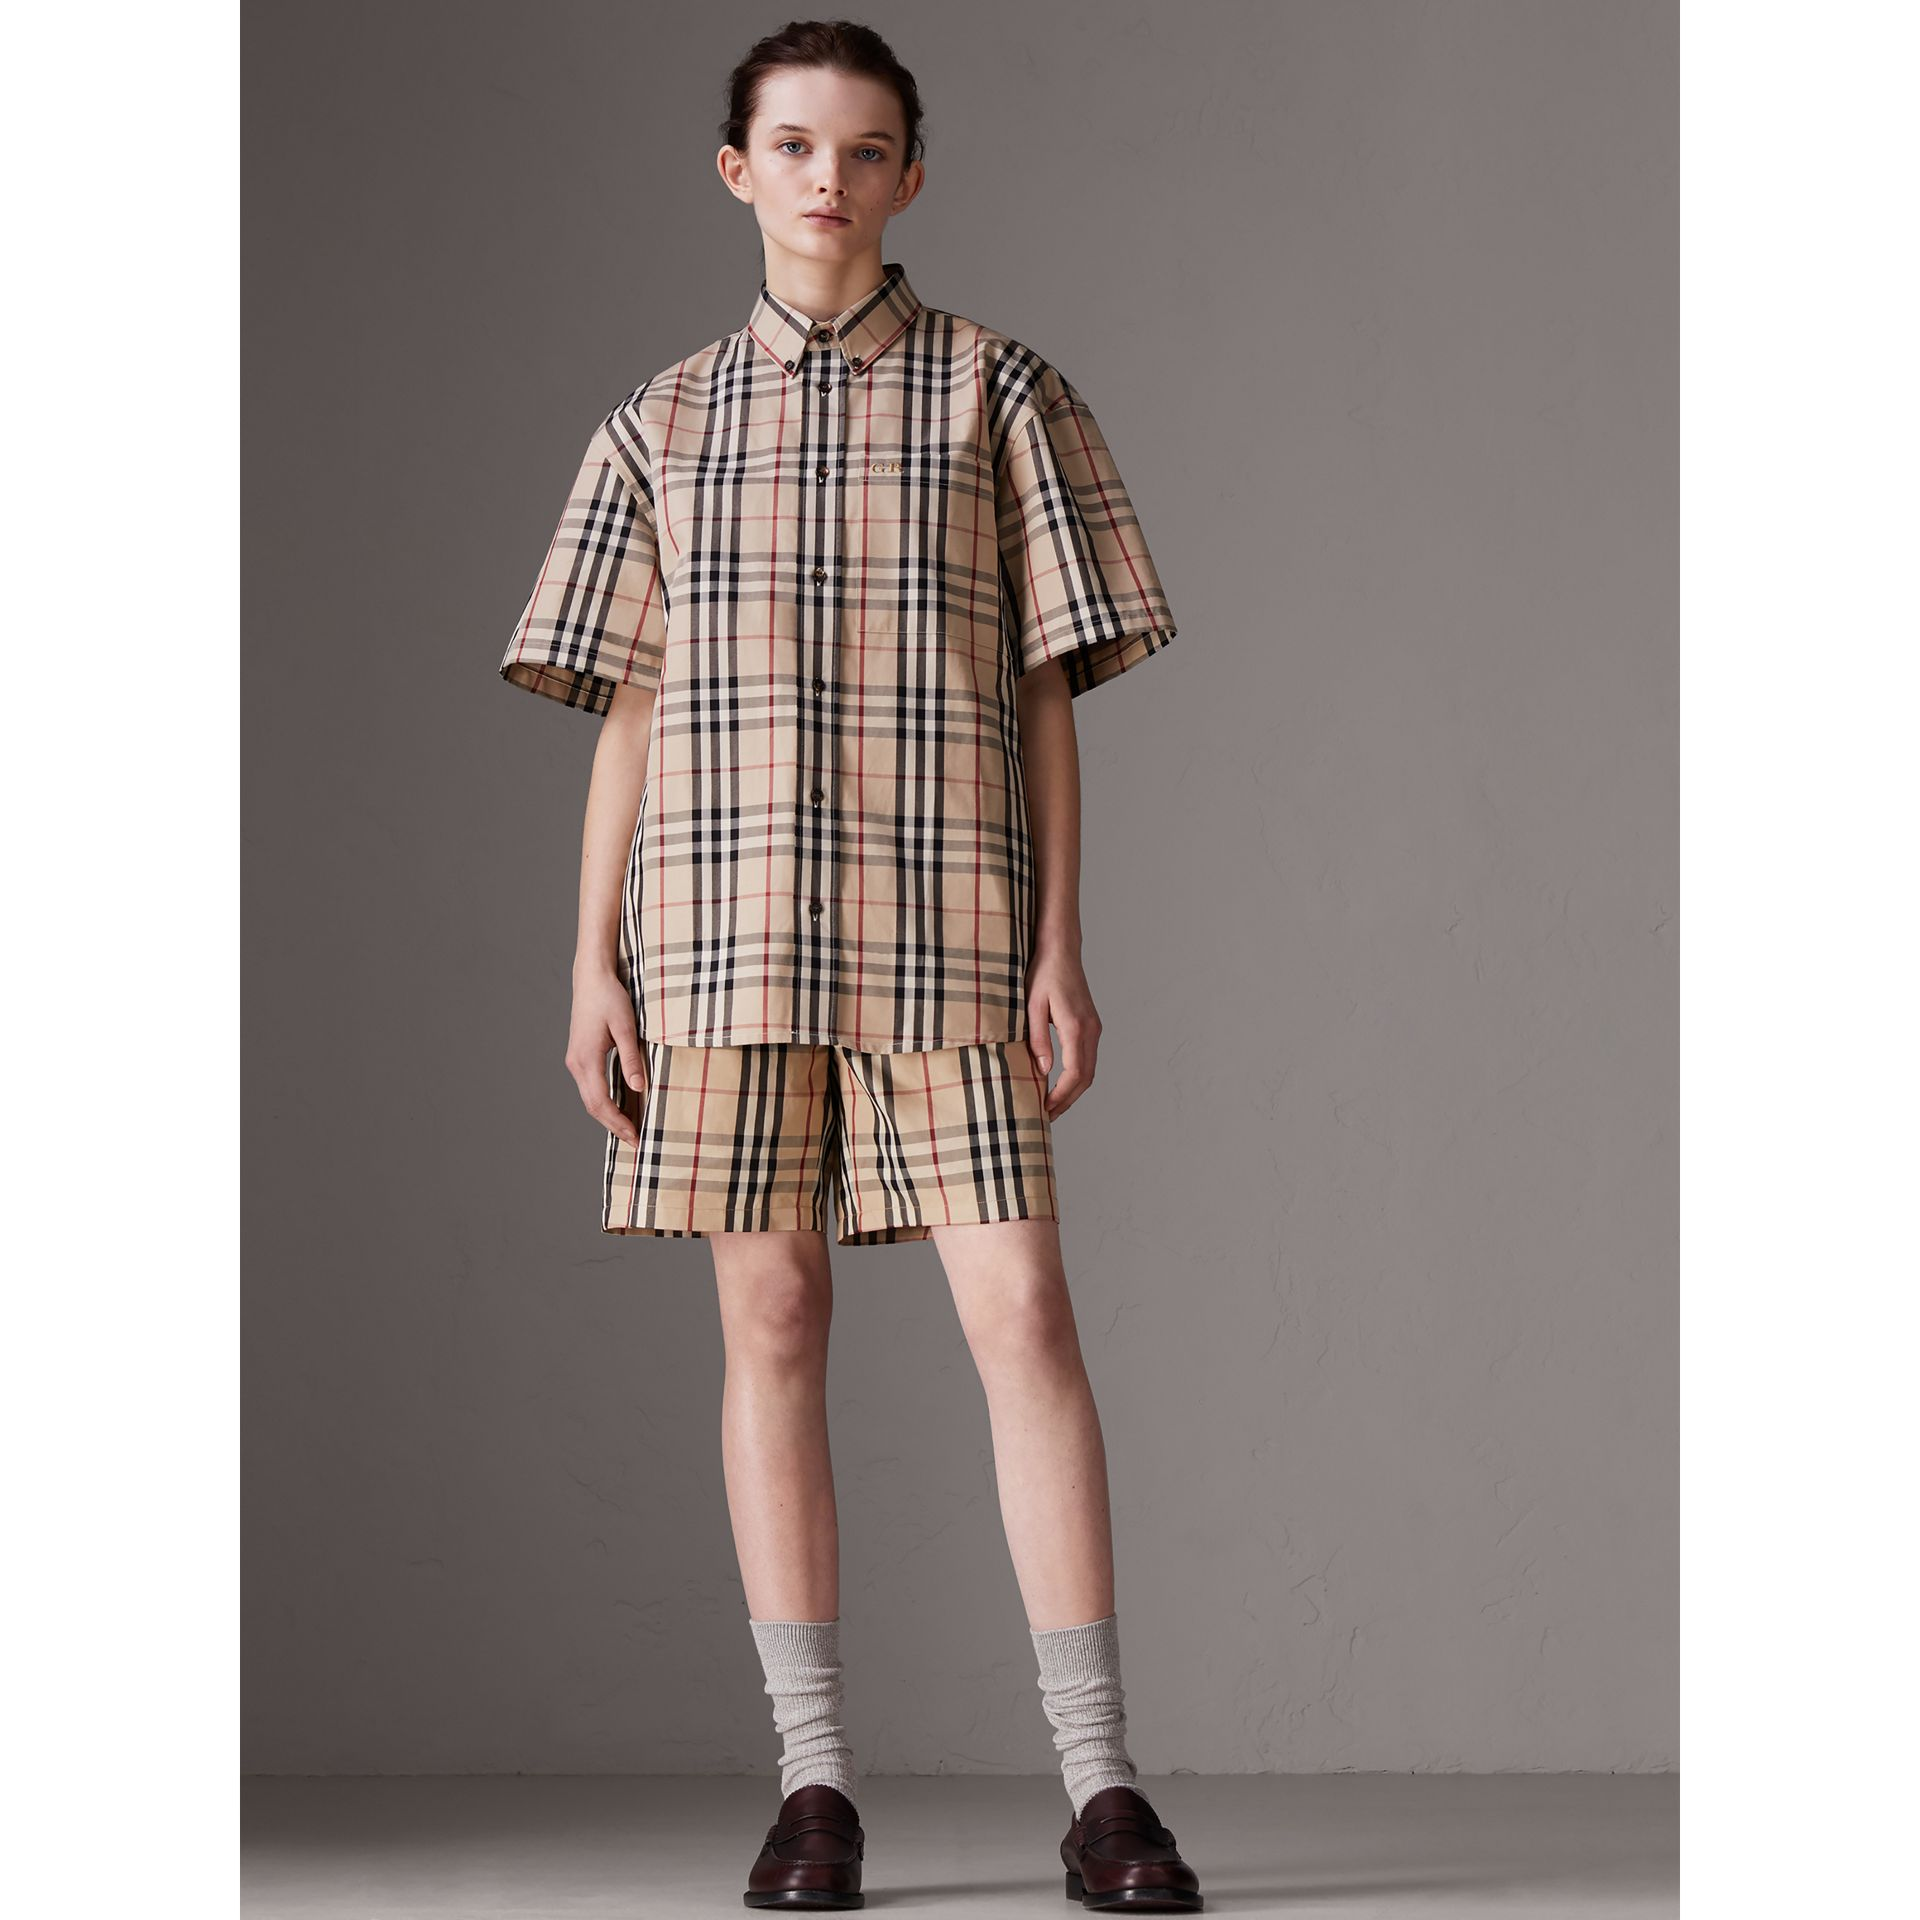 Gosha x Burberry Short-sleeve Check Shirt in Honey | Burberry Australia - gallery image 3